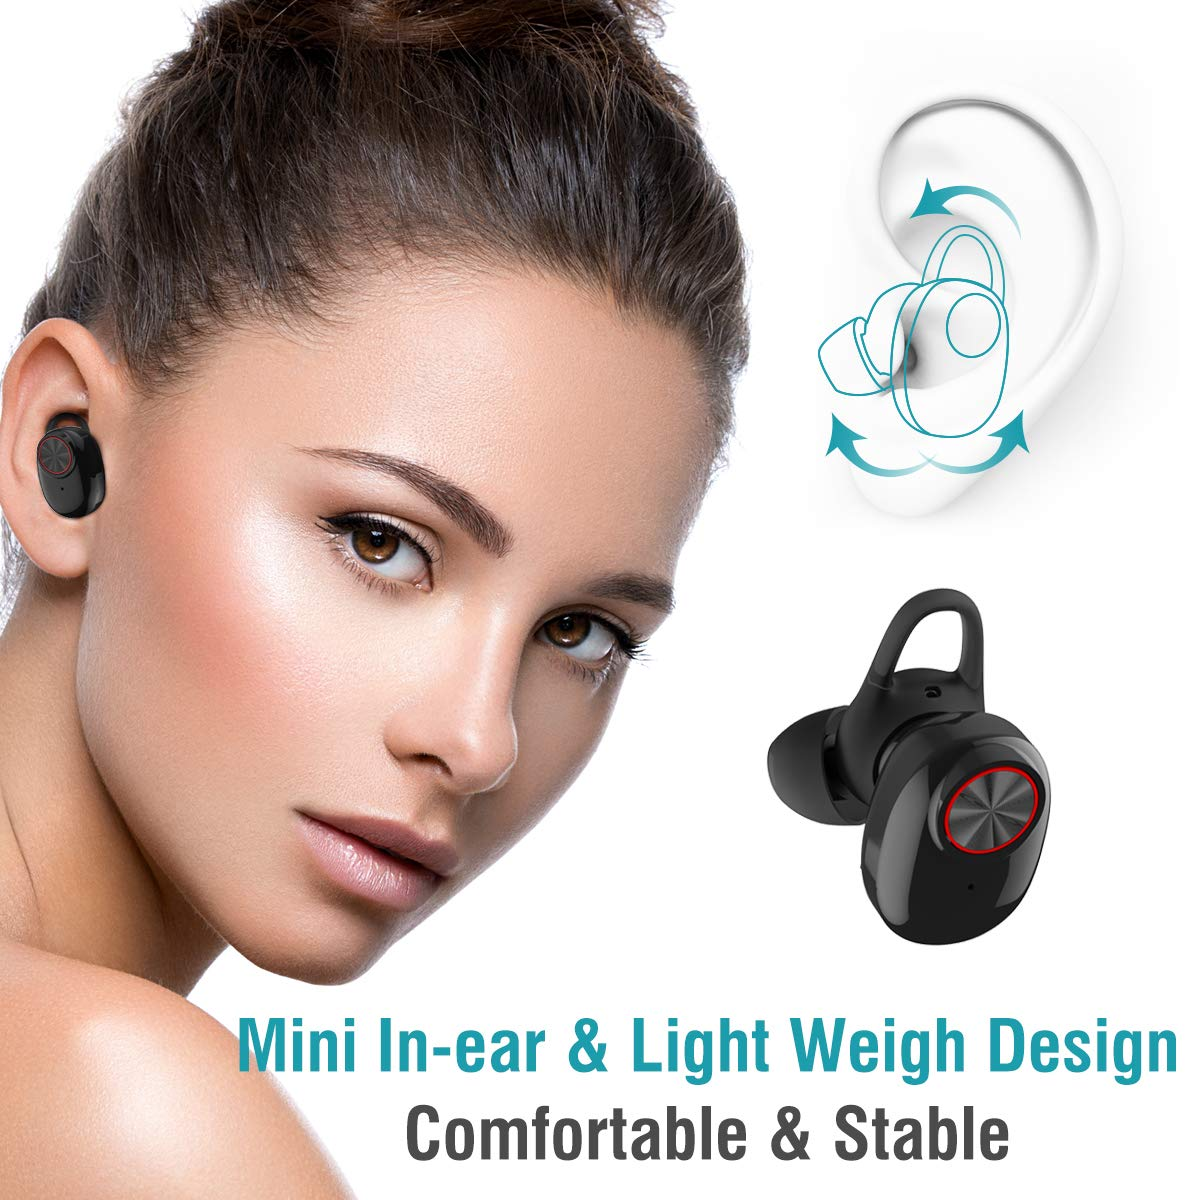 HBNS V5 Bluetooth Earphone With V4.2+EDR Stereo Sound V5 Wireless Earphone Built-in Microphone Hands-free Calling Bluetooth TWS Earbuds